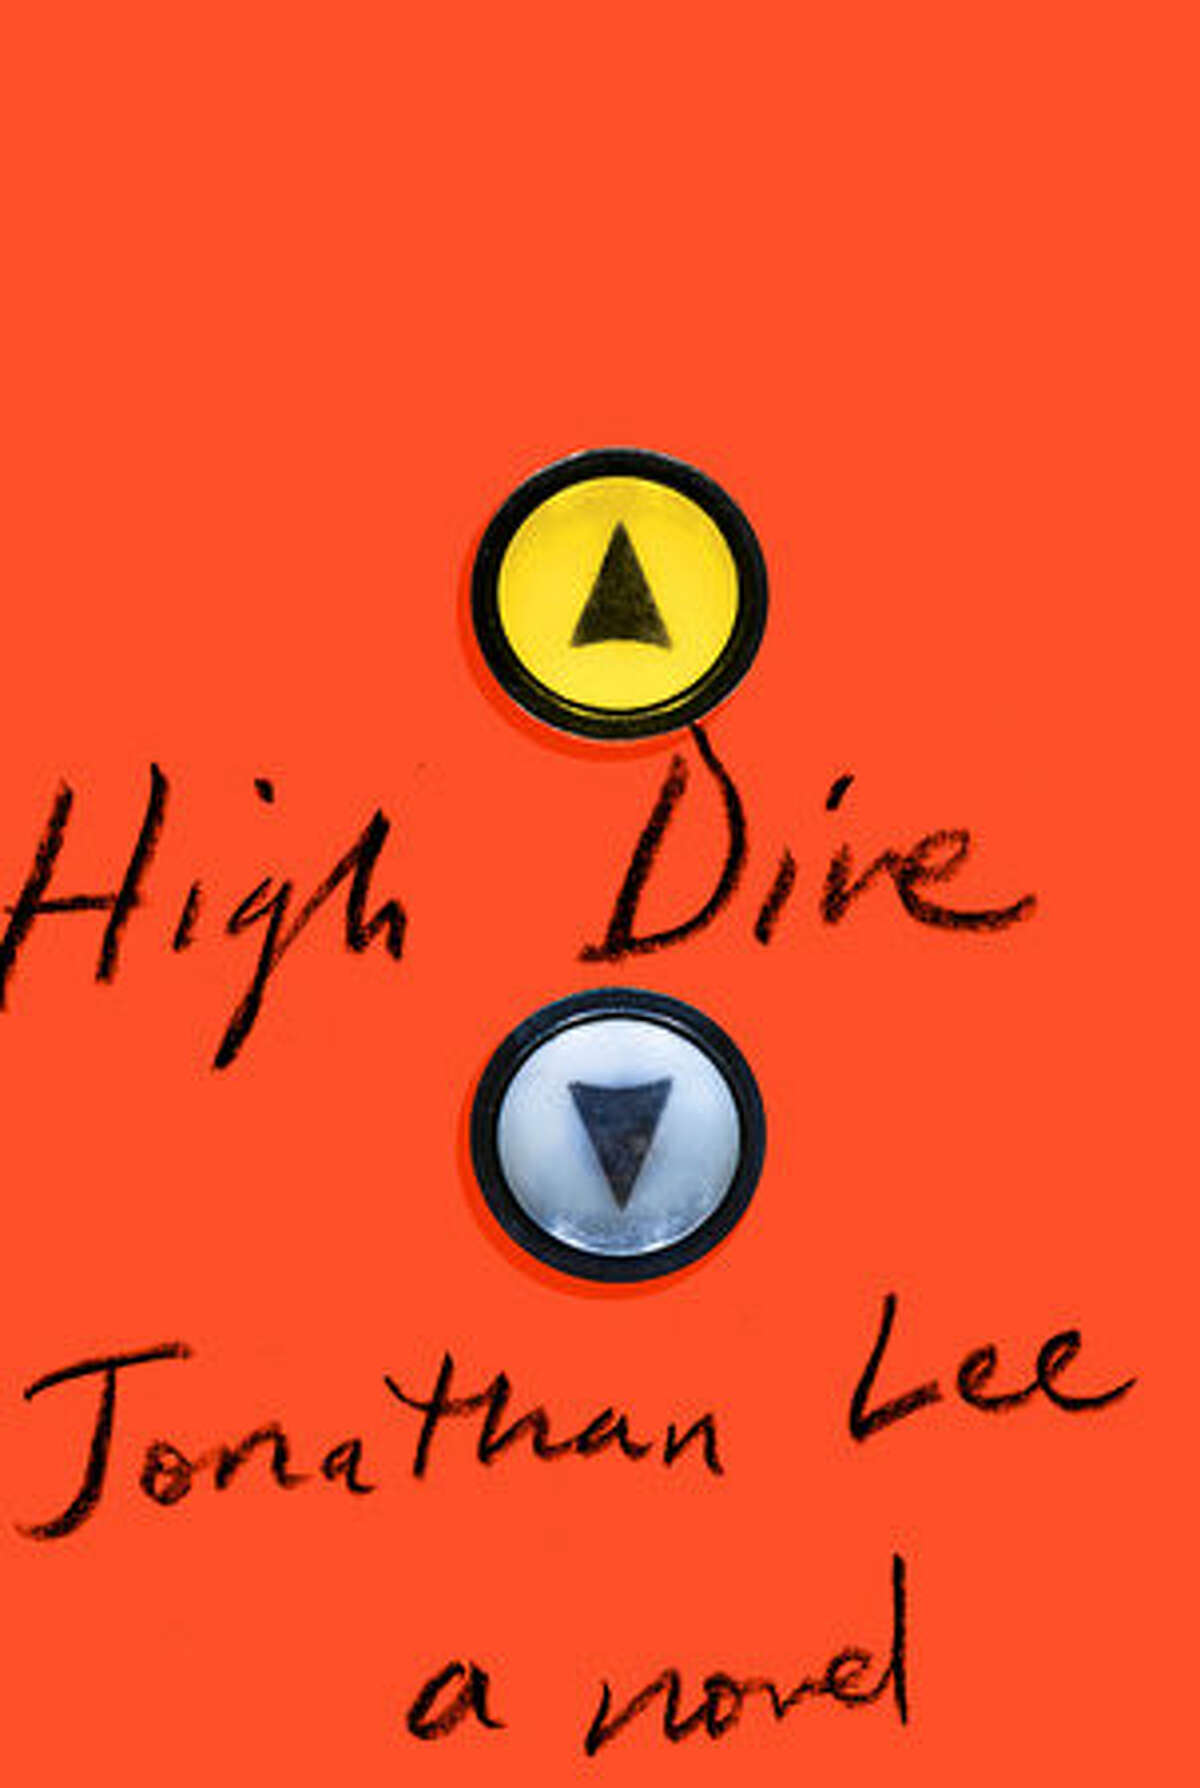 """""""High Dive,"""" by Jonathan Lee (March, Knopf Doubleday). Another book told from multiple points of view, """"High Dive"""" revolves around one historical incident: the Irish Republican Army's bombing of the Brighton Hotel in England in October 1984, an attempt to kill Prime Minister Margaret Thatcher and her cabinet. But this is just a jumping off point for a plot that pulls in fiction, comedy and tragedy before its done. Remember, Marlon James won the Man Booker Prize for his fictionalized account of the attempted assassination of Bob Marley in """"A Brief History of Seven Killings."""" Is this a niche trend?"""